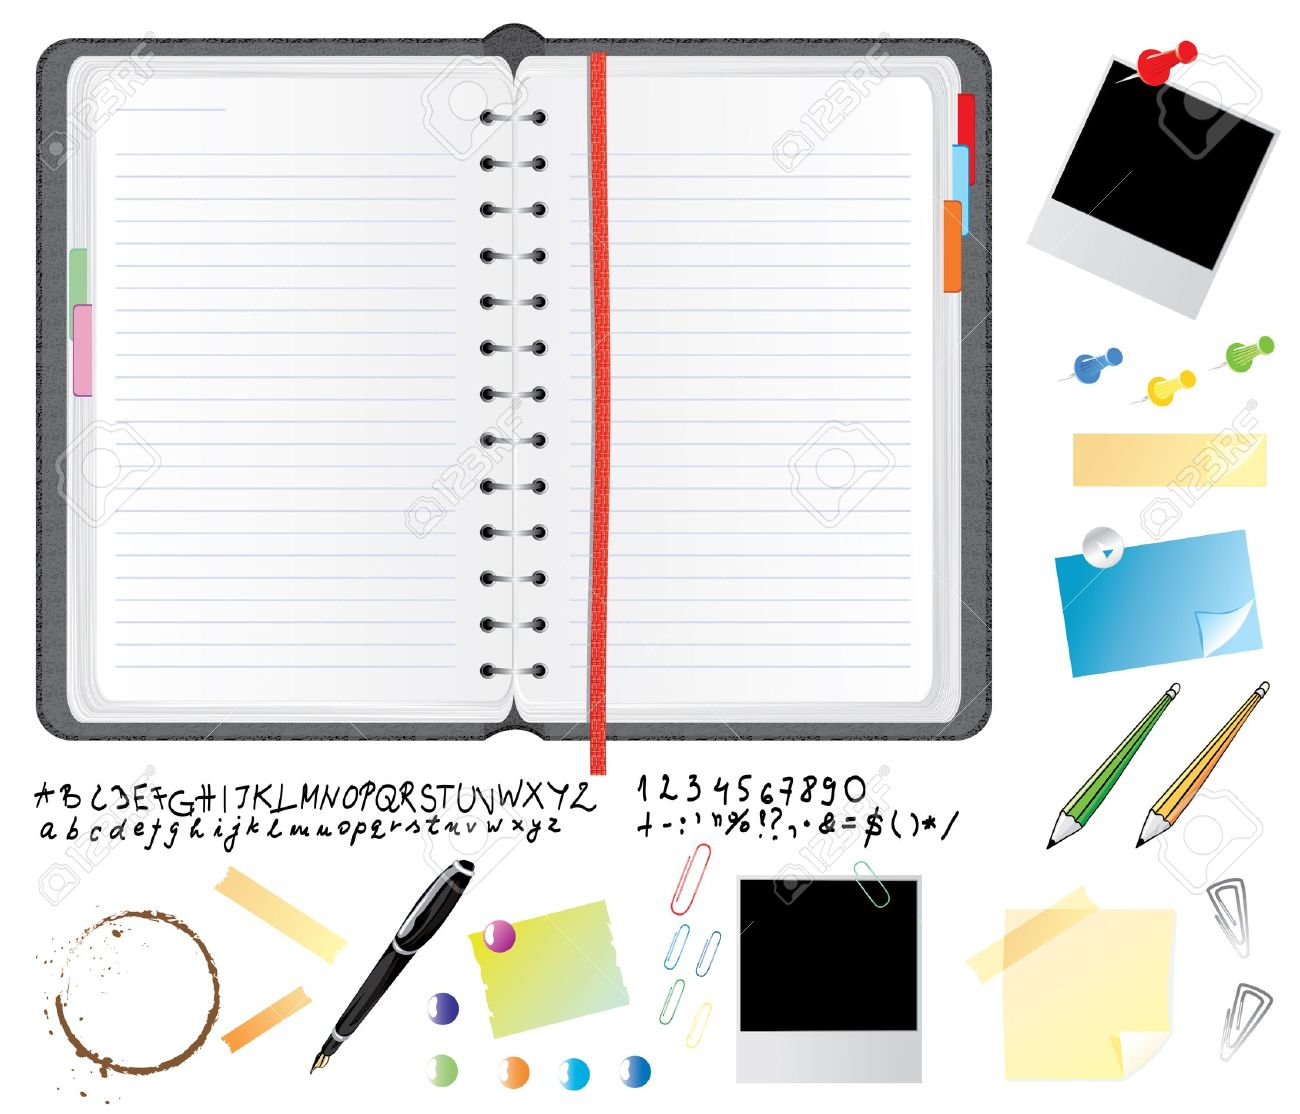 Daily planner clipart.